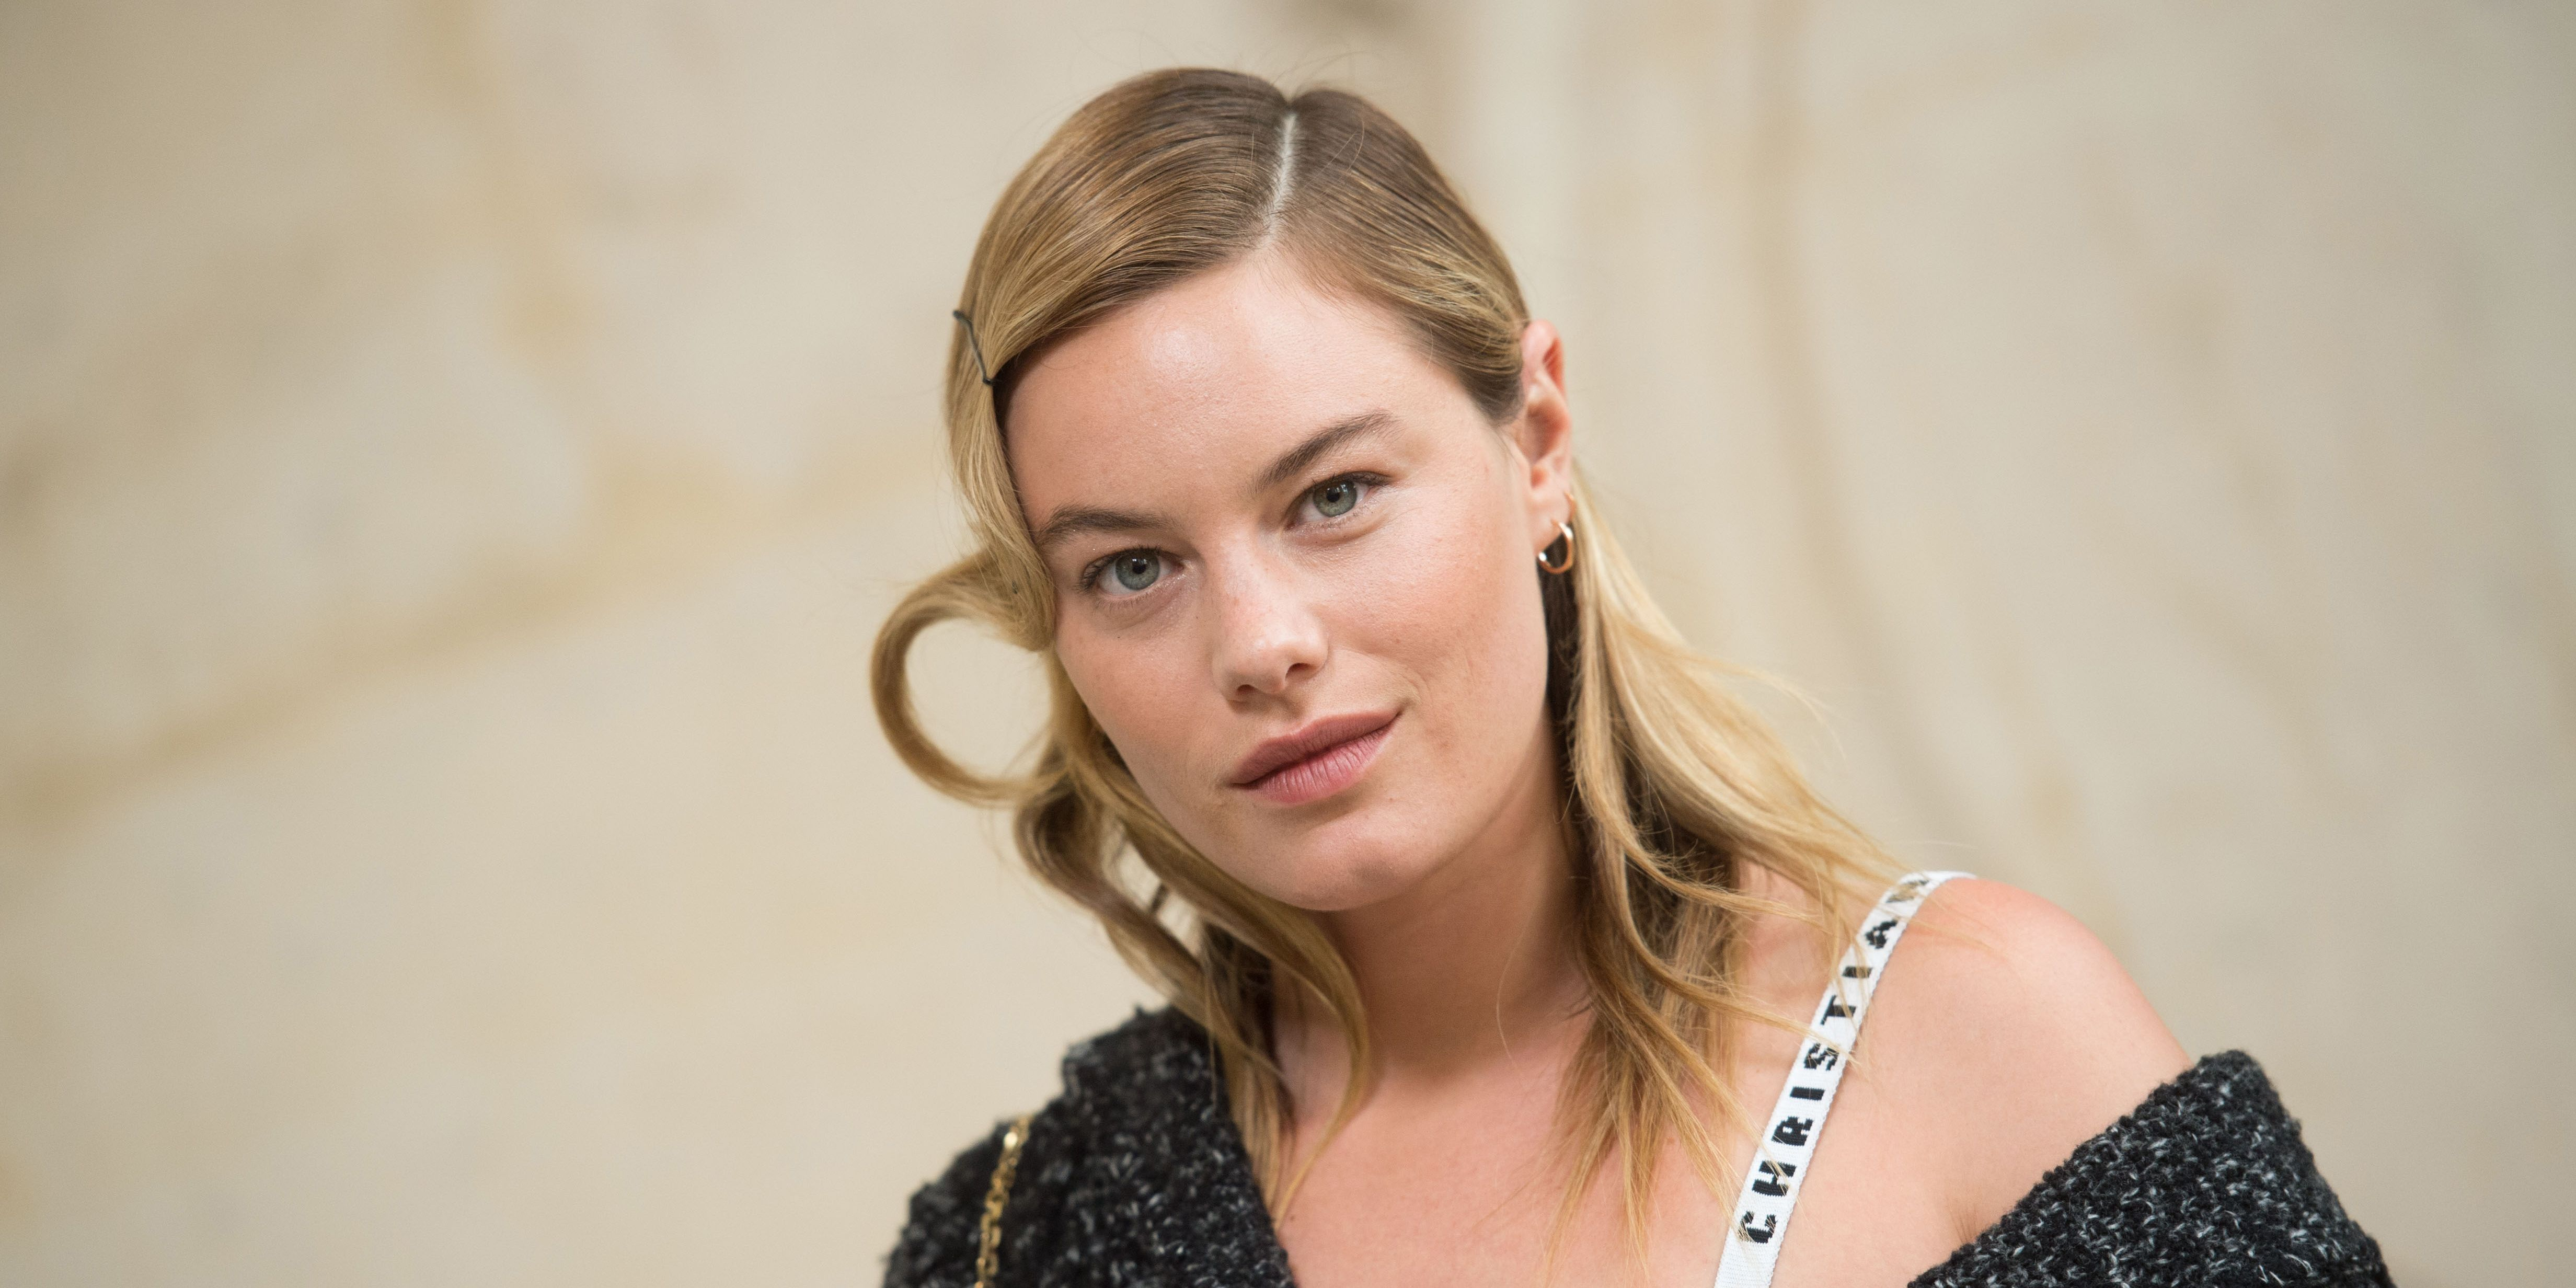 Pictures Camille Rowe nudes (93 pics), Paparazzi